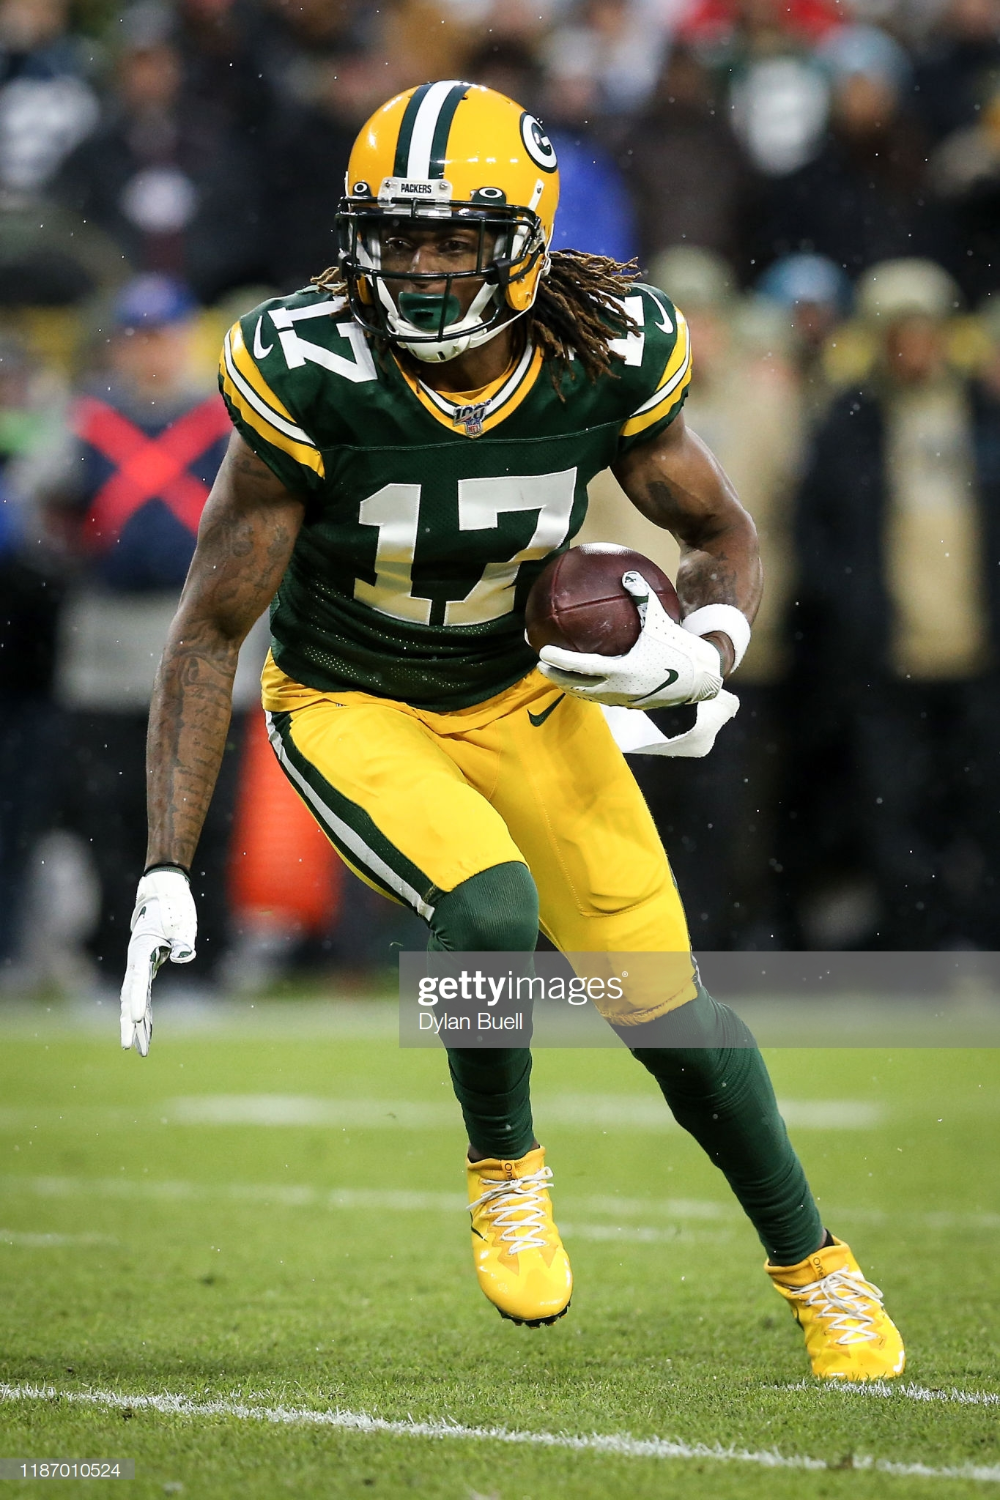 Davante Adams Of The Green Bay Packers Runs With The Ball In The Green Bay Packers Green Bay Packers Football Packers